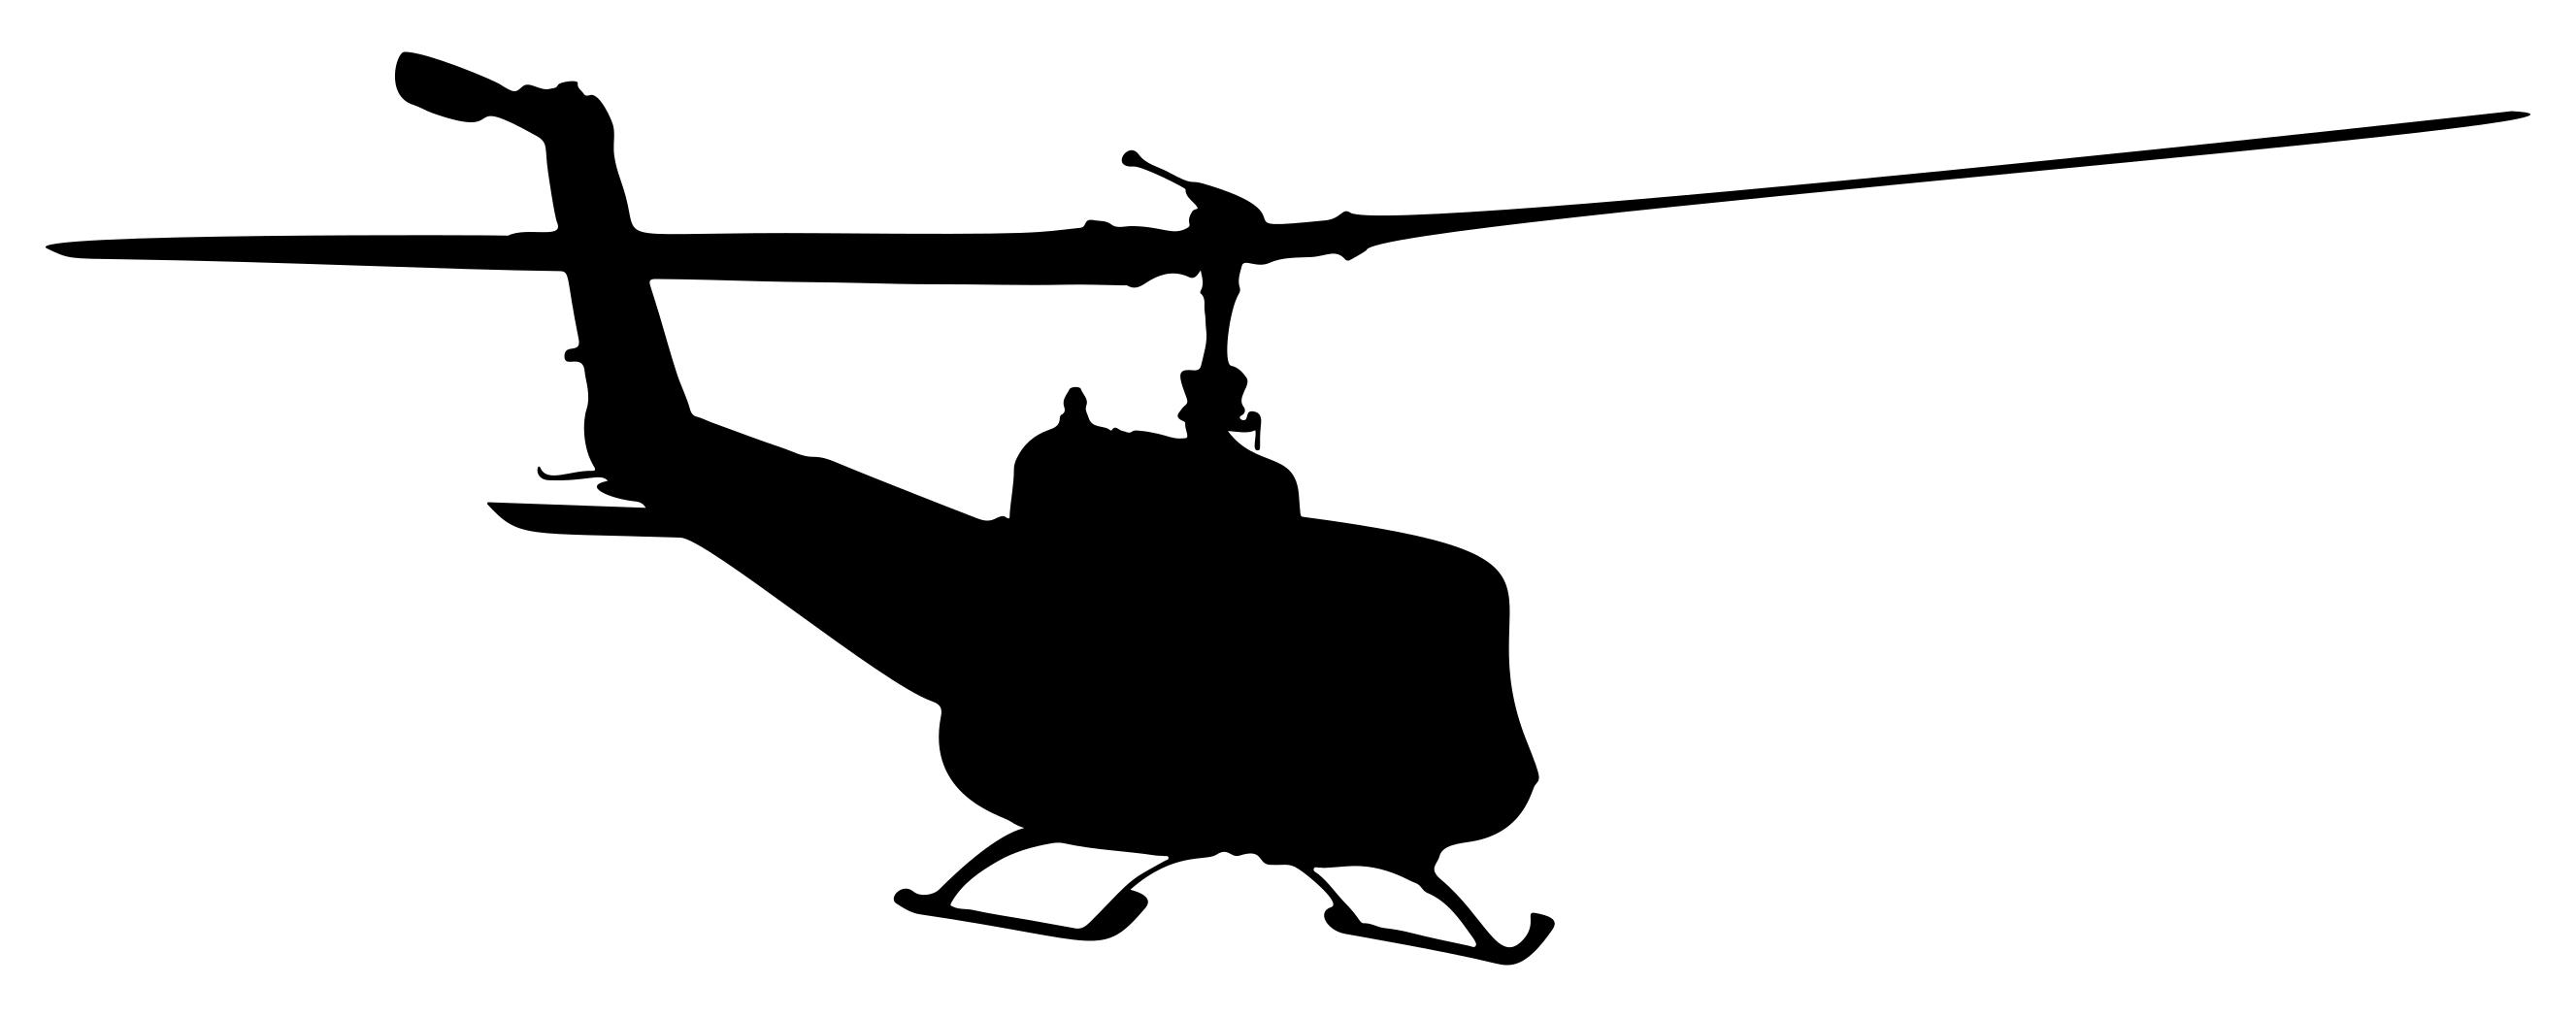 2654x1048 Helicopter Silhouette 6 Clipart